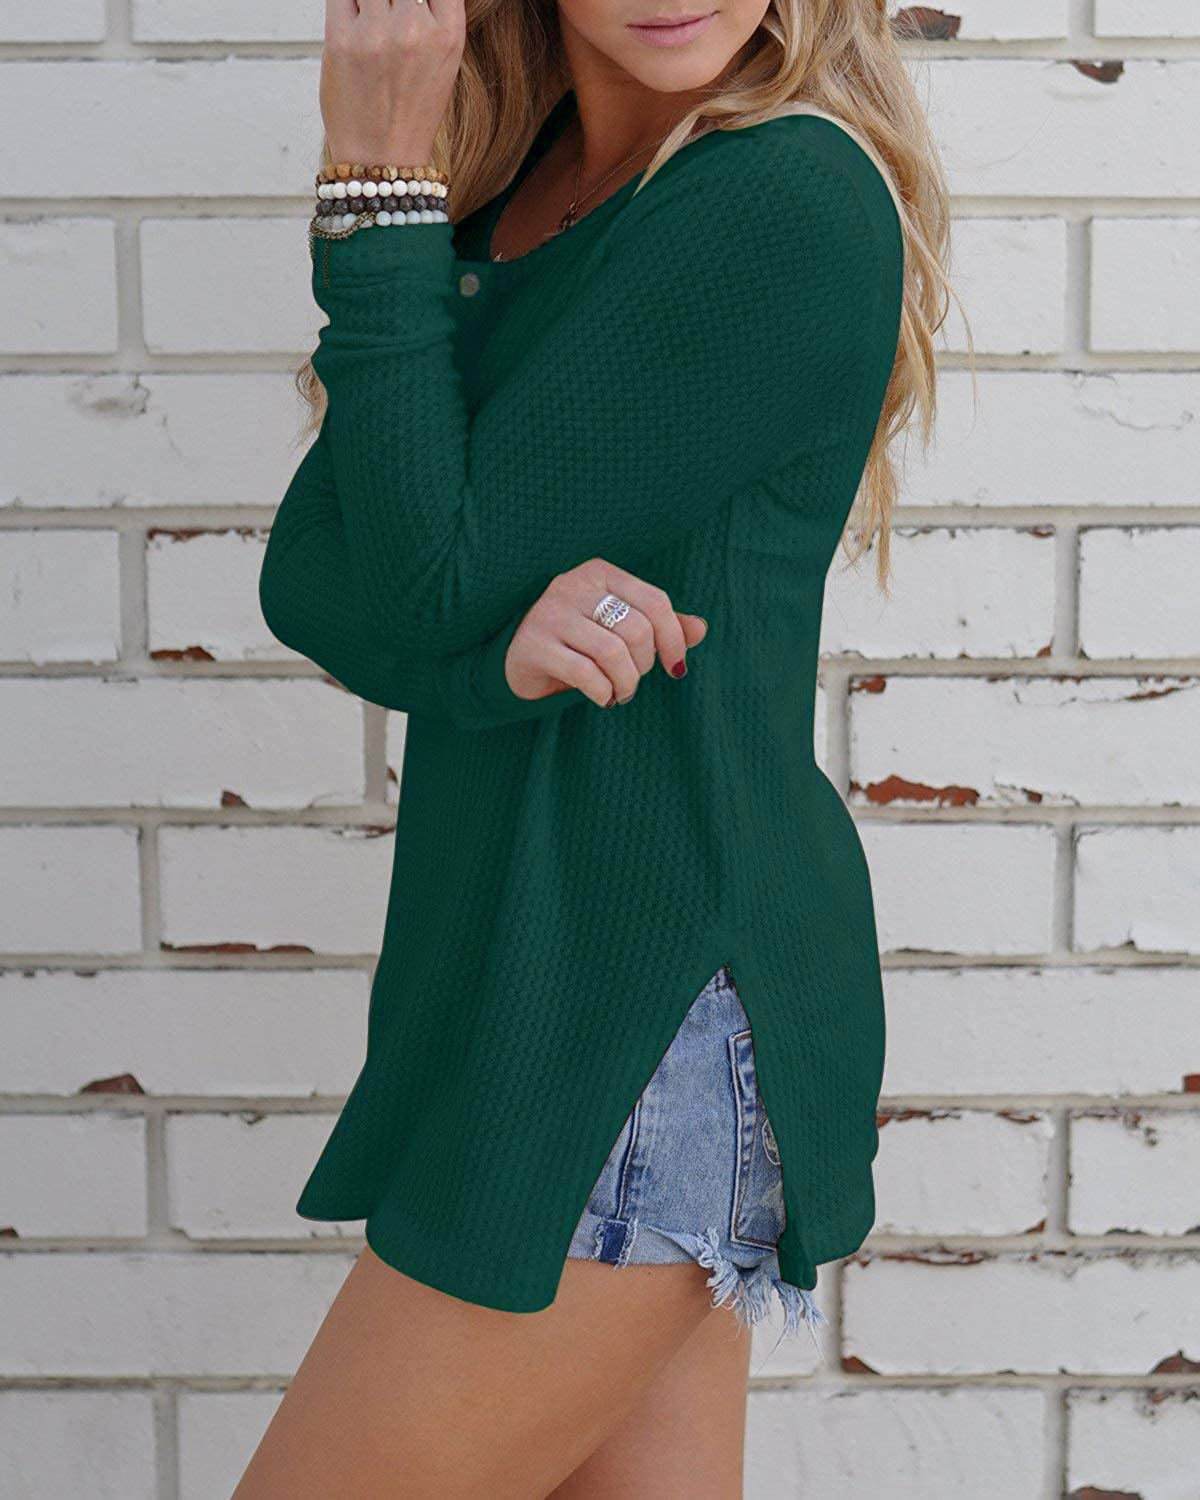 863f85f8818c ALALEI Womens Long Sleeve Henley Blouse Fall Button Down Pullover Knit  Loose Leisure Stylish Sexy Knit Sweaters Tops at Amazon Women s Clothing  store